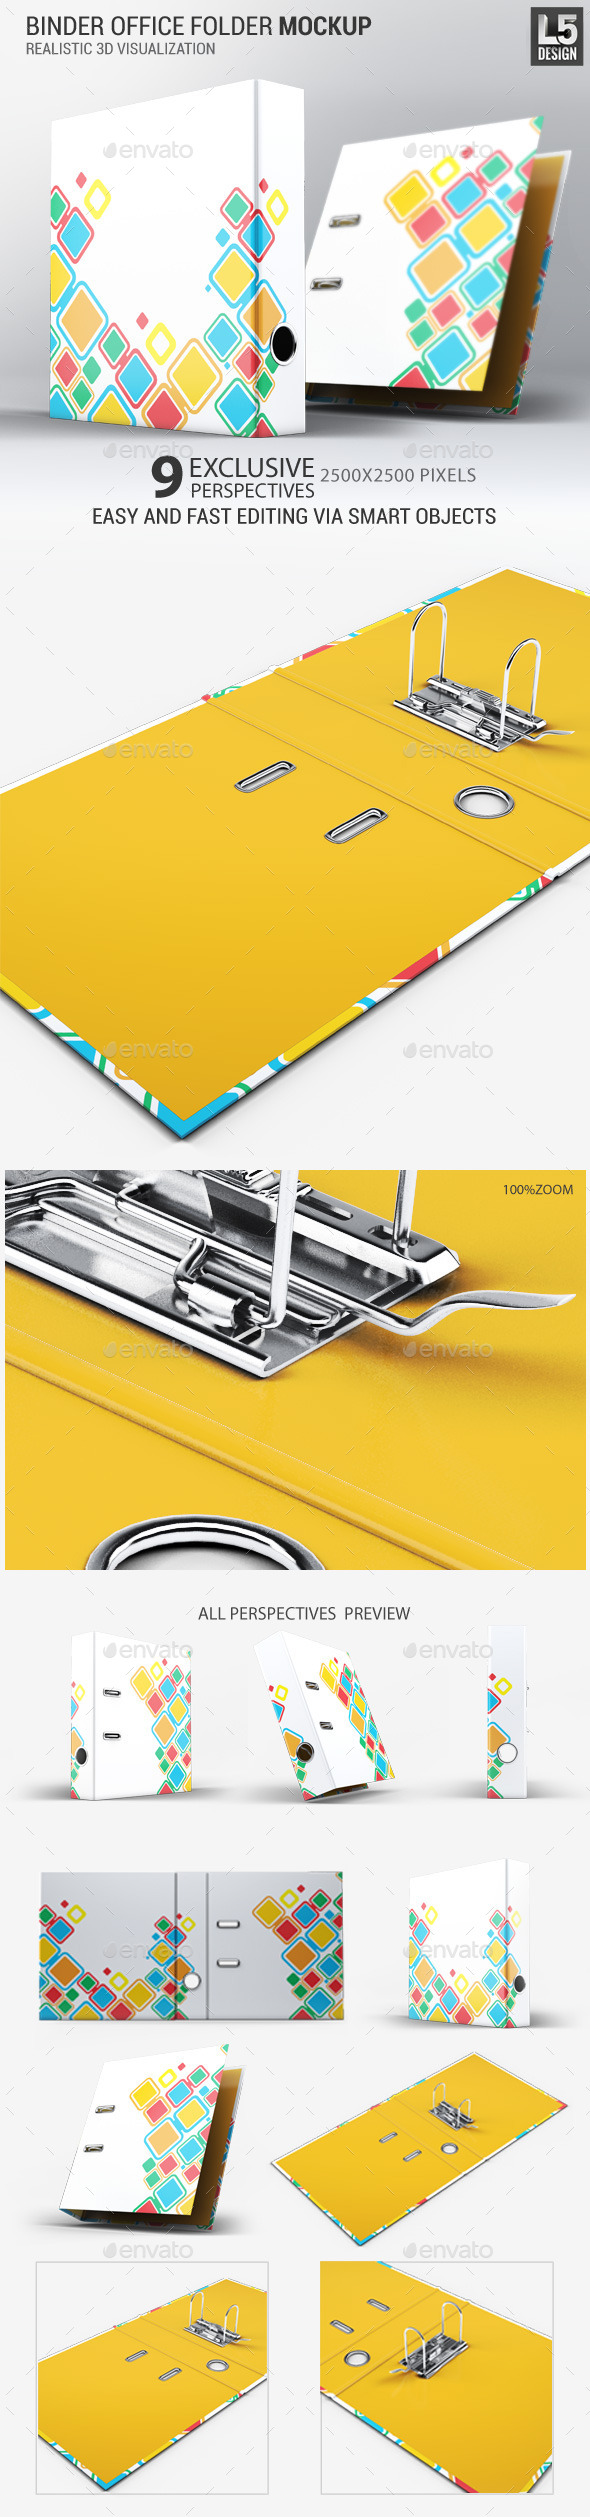 Binder Office Folder Mock-Up (Stationery)